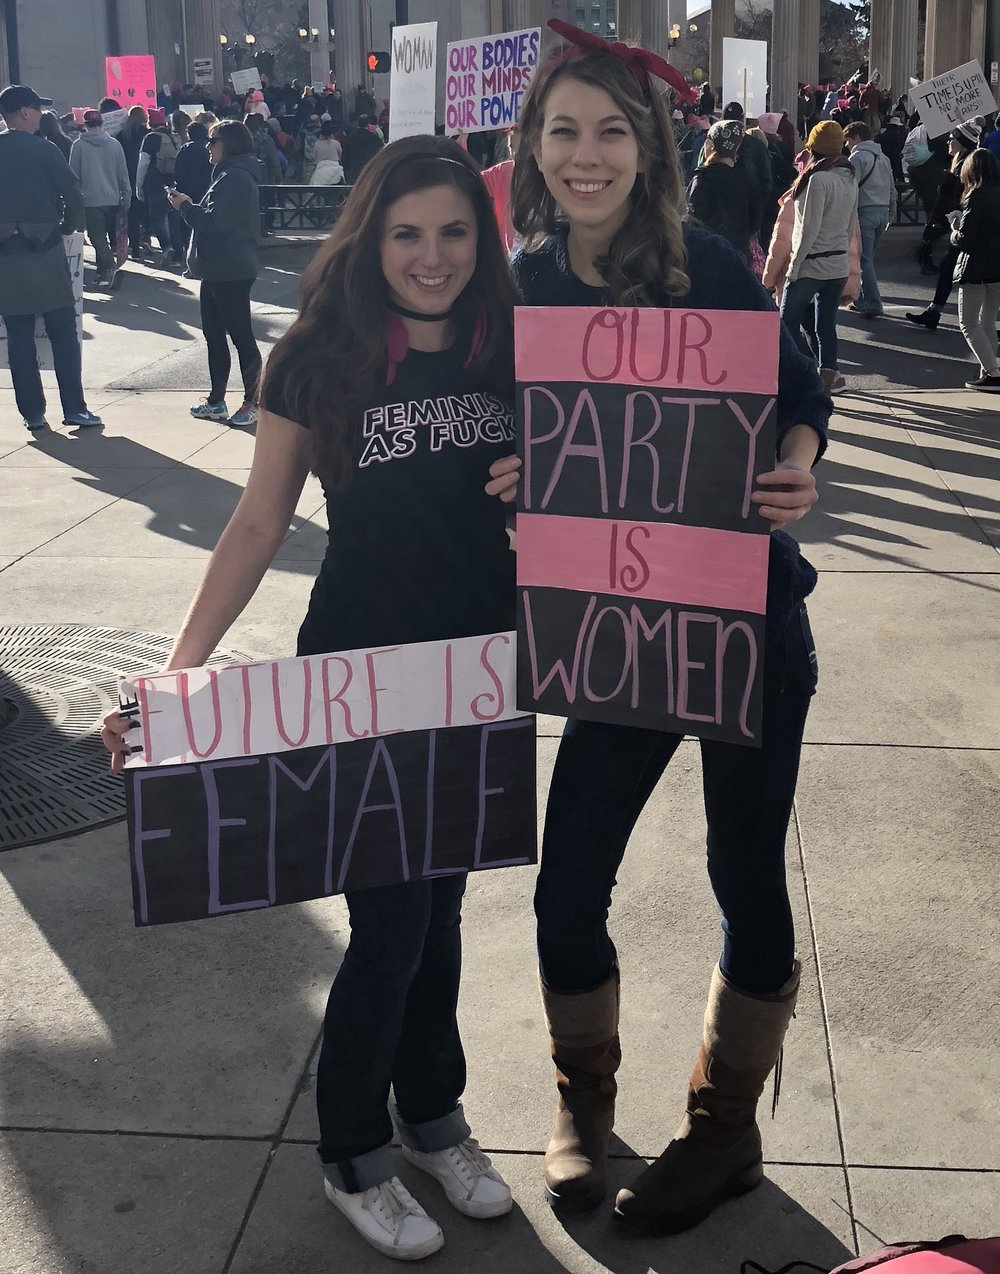 Author, Camille Tallichet, pictured left at the 2018 Women's March in Denver, CO.